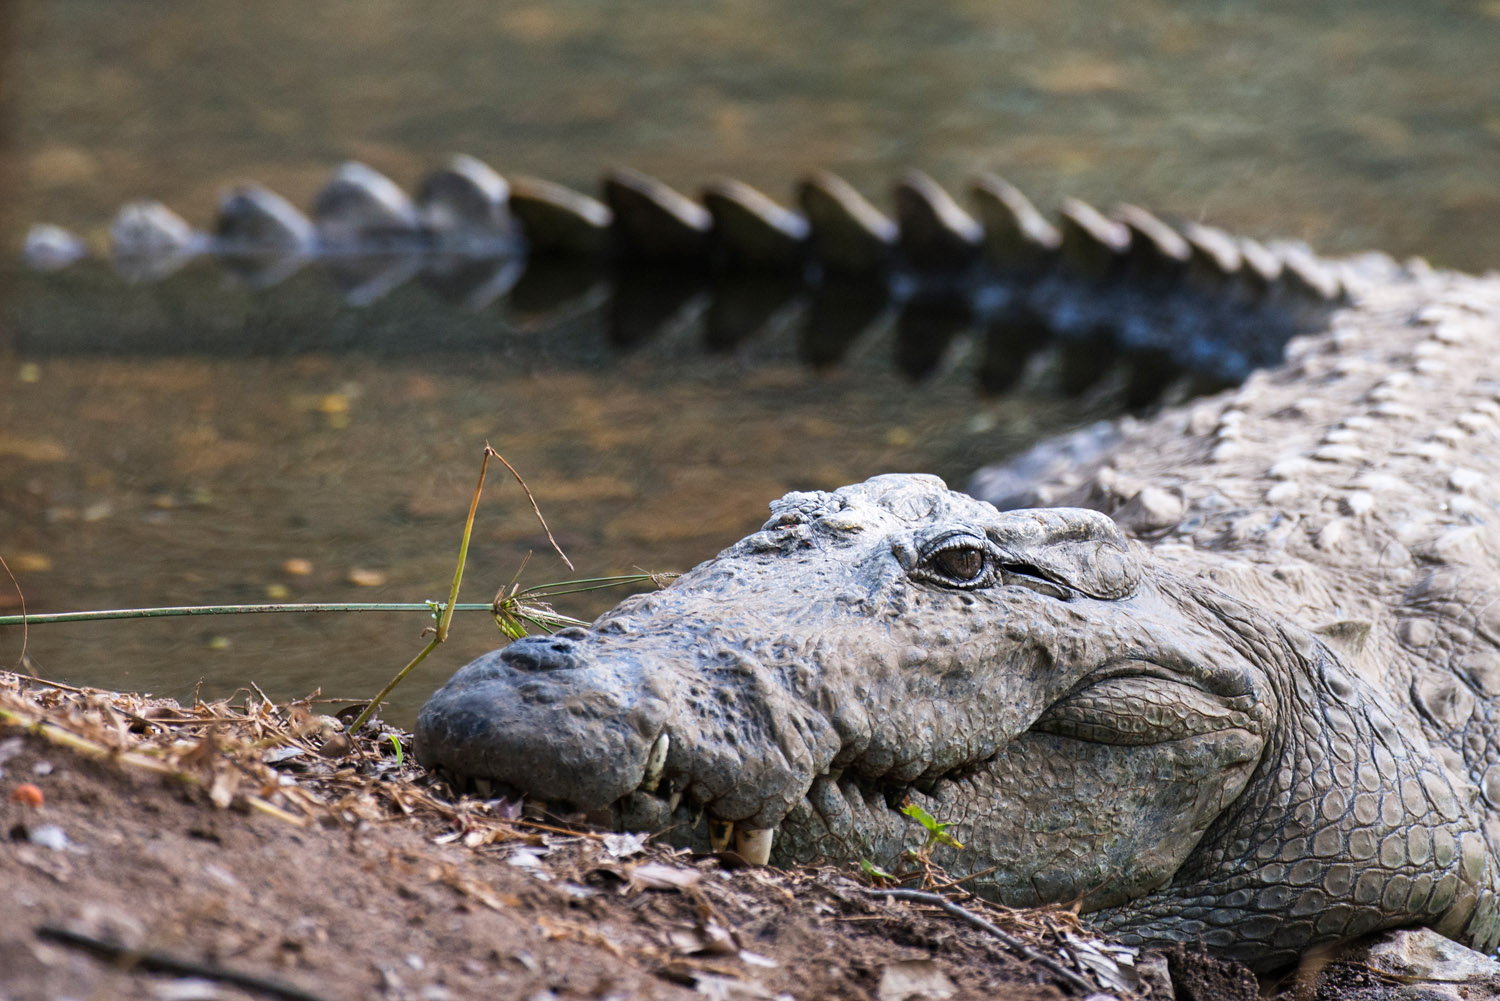 Indian 'mugger' crocodile, Ranthambhore National Park, Rajasthan, India